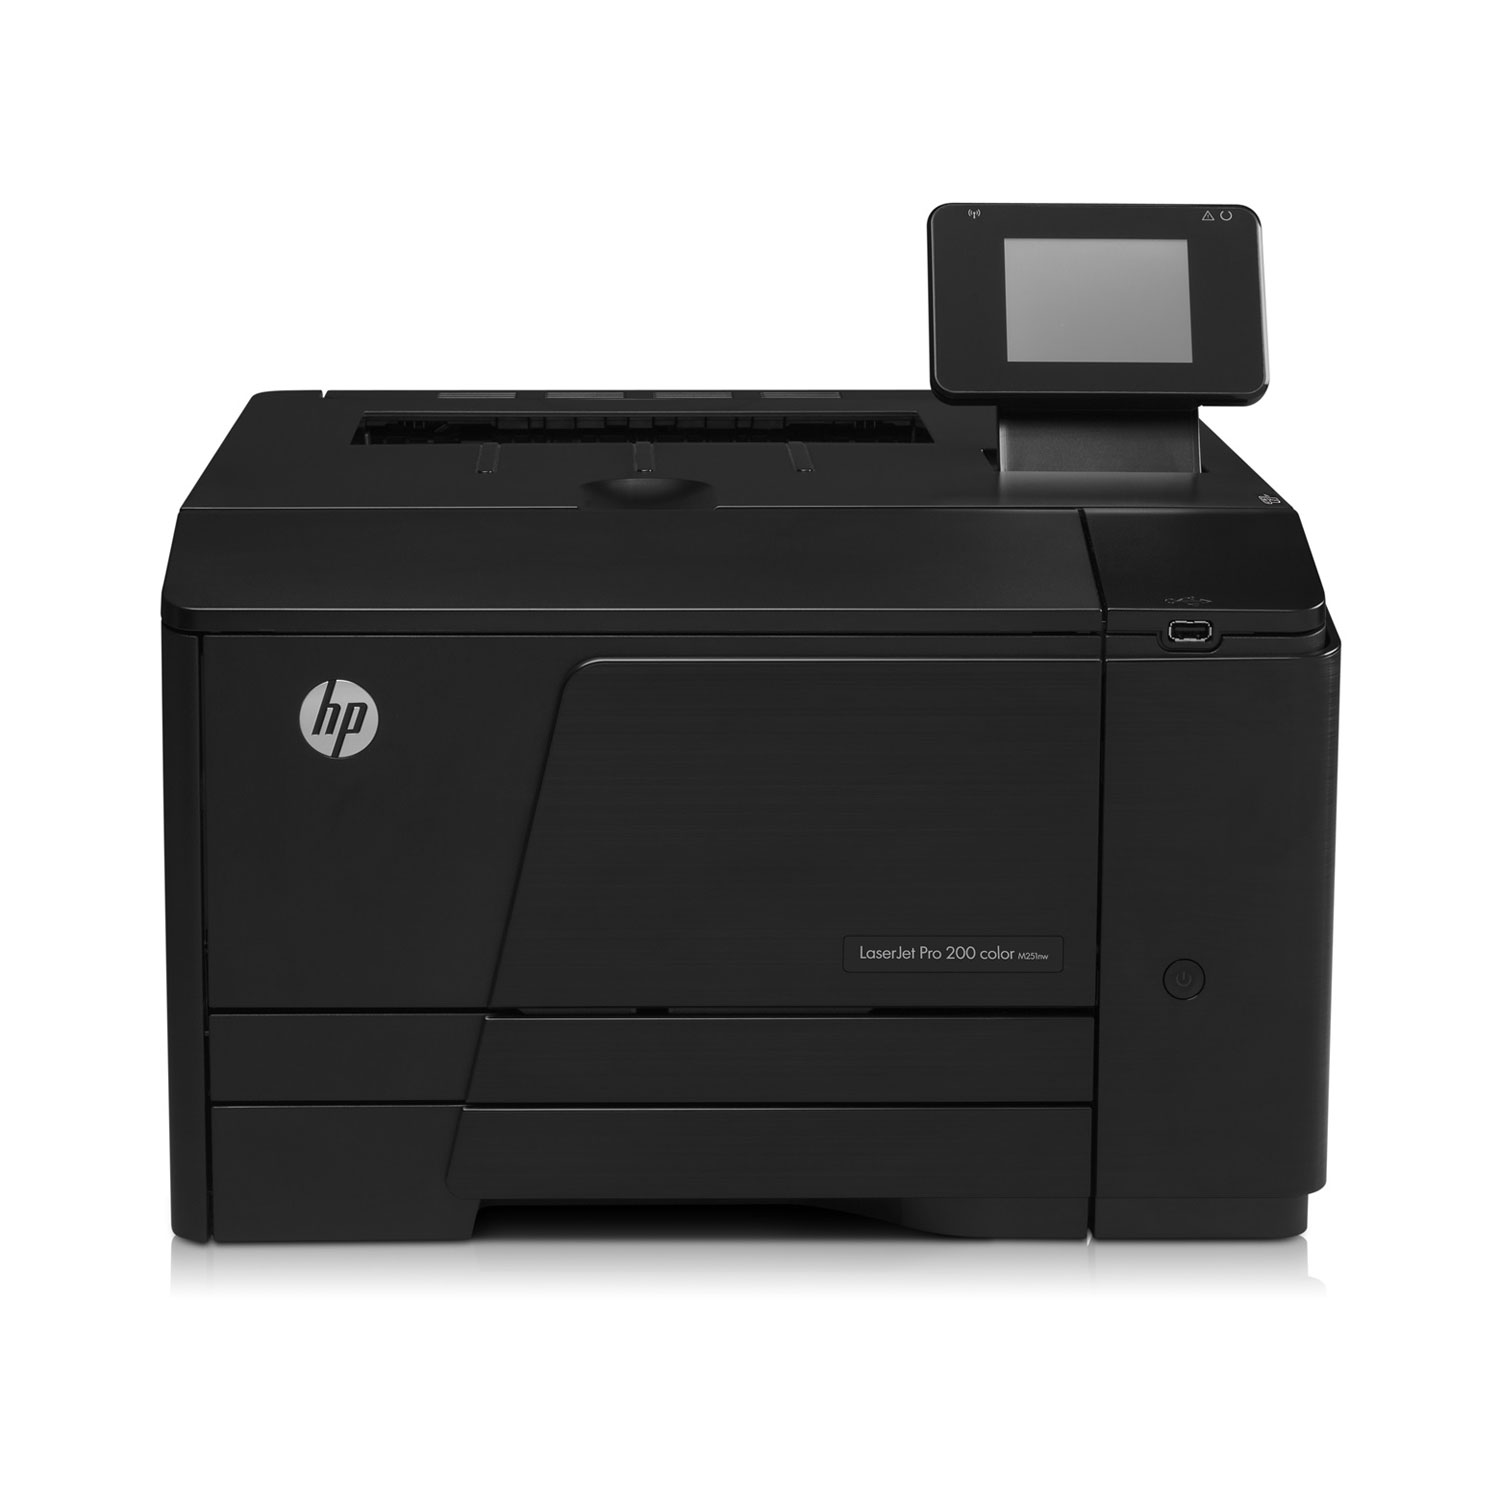 hp laserjet pro 200 m251nw imprimante laser hp sur. Black Bedroom Furniture Sets. Home Design Ideas